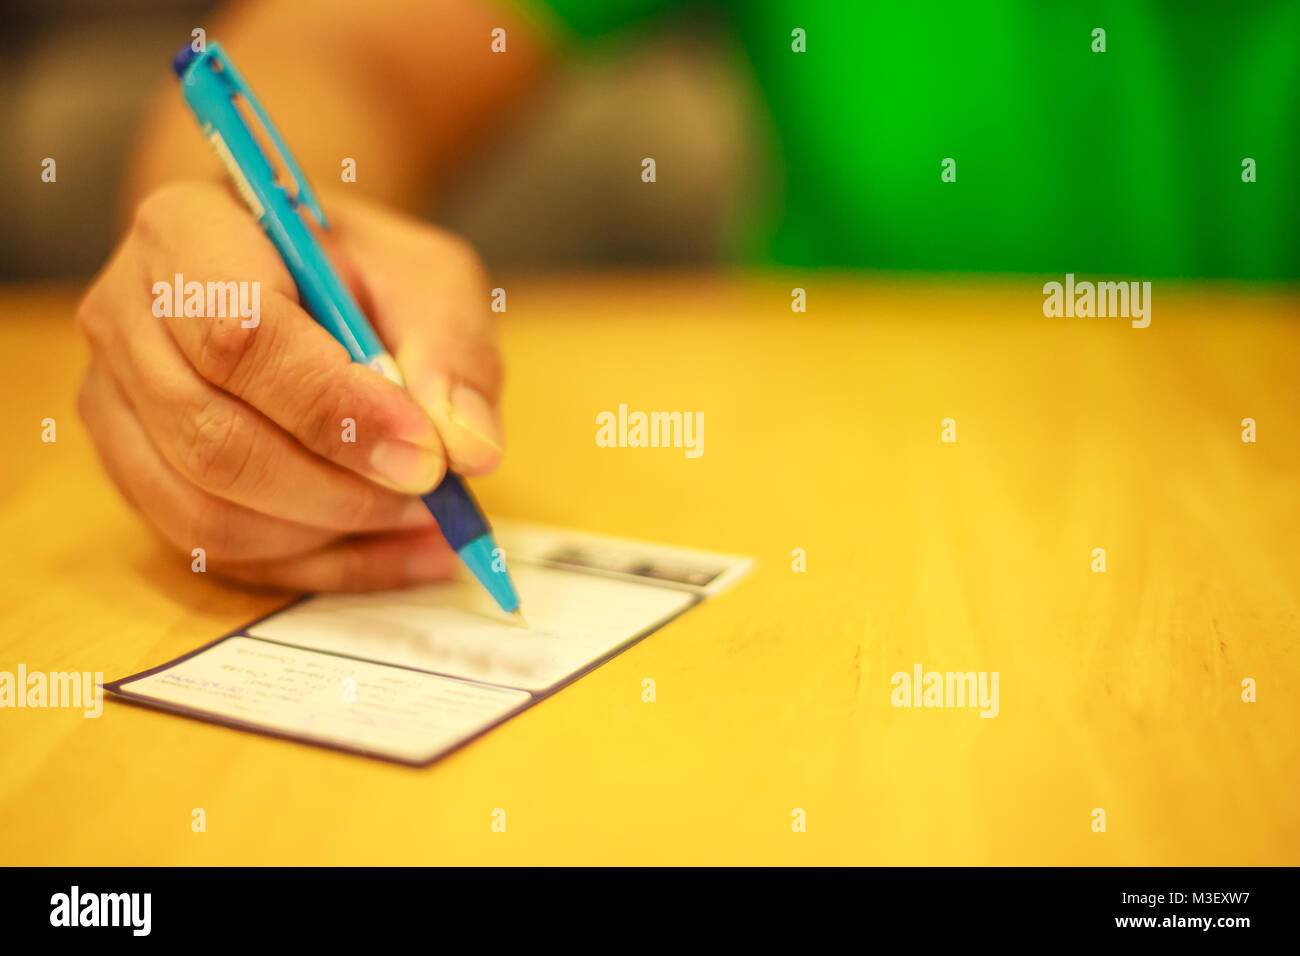 Man's right hand writing on the lucky draw coupon, memo, comment, suggestion or questionnaires on the wooden - Stock Image